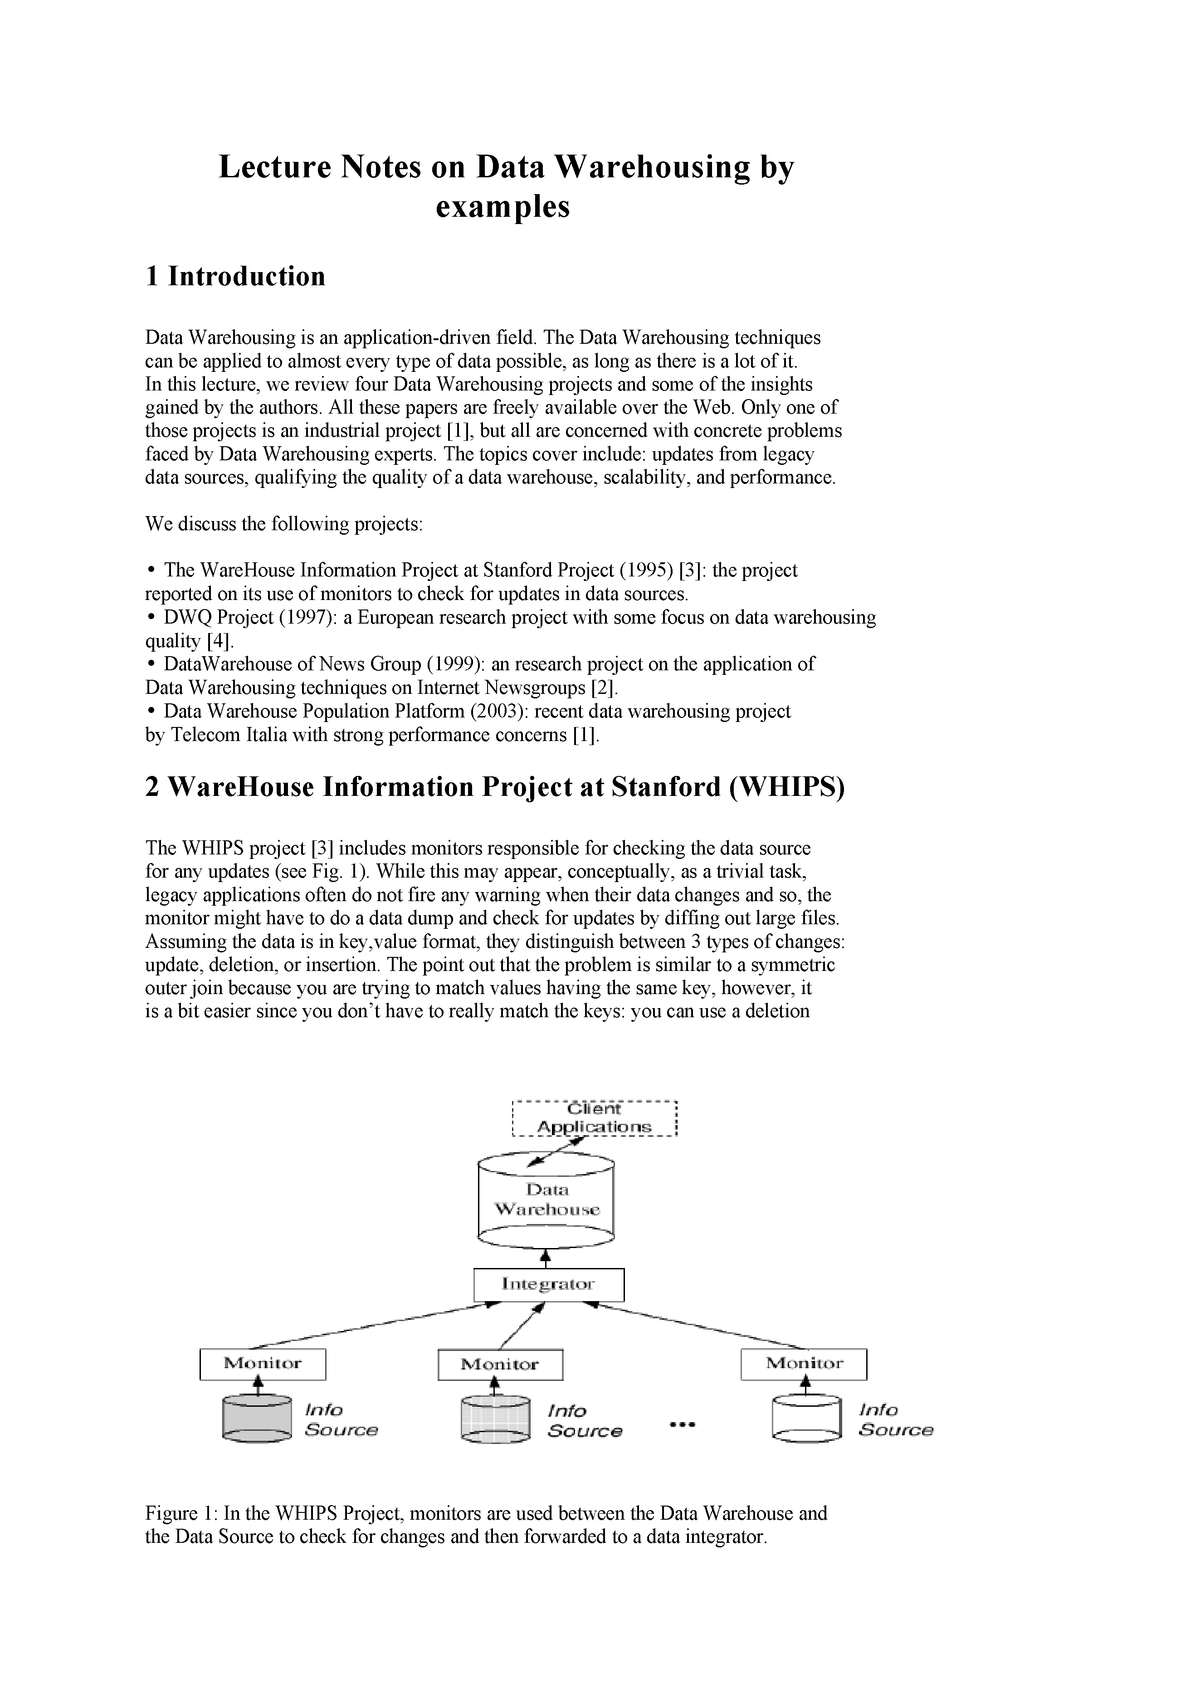 Lecture Notes on Data Warehousing by examples - MMIS 0642